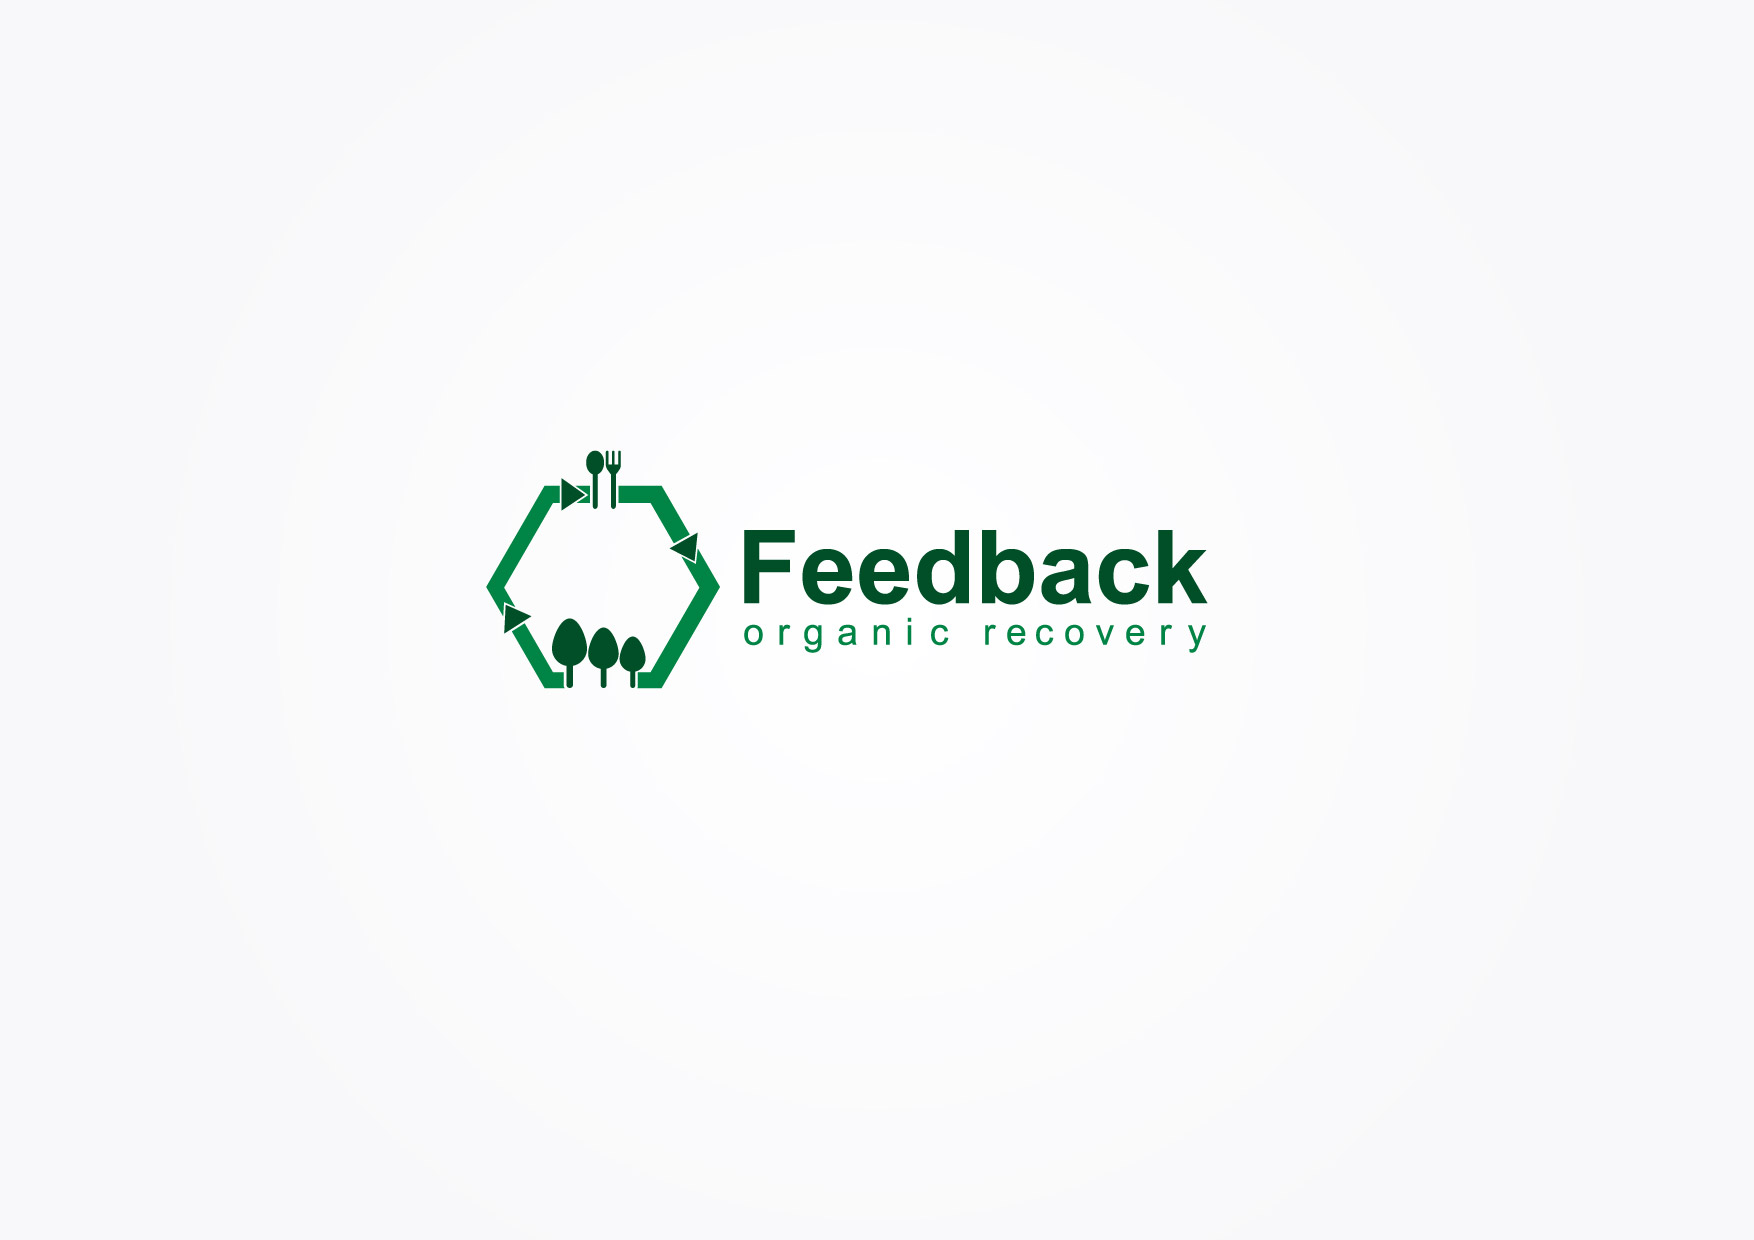 Logo Design by Osi Indra - Entry No. 18 in the Logo Design Contest Feedback Organic Recovery  Logo Design.